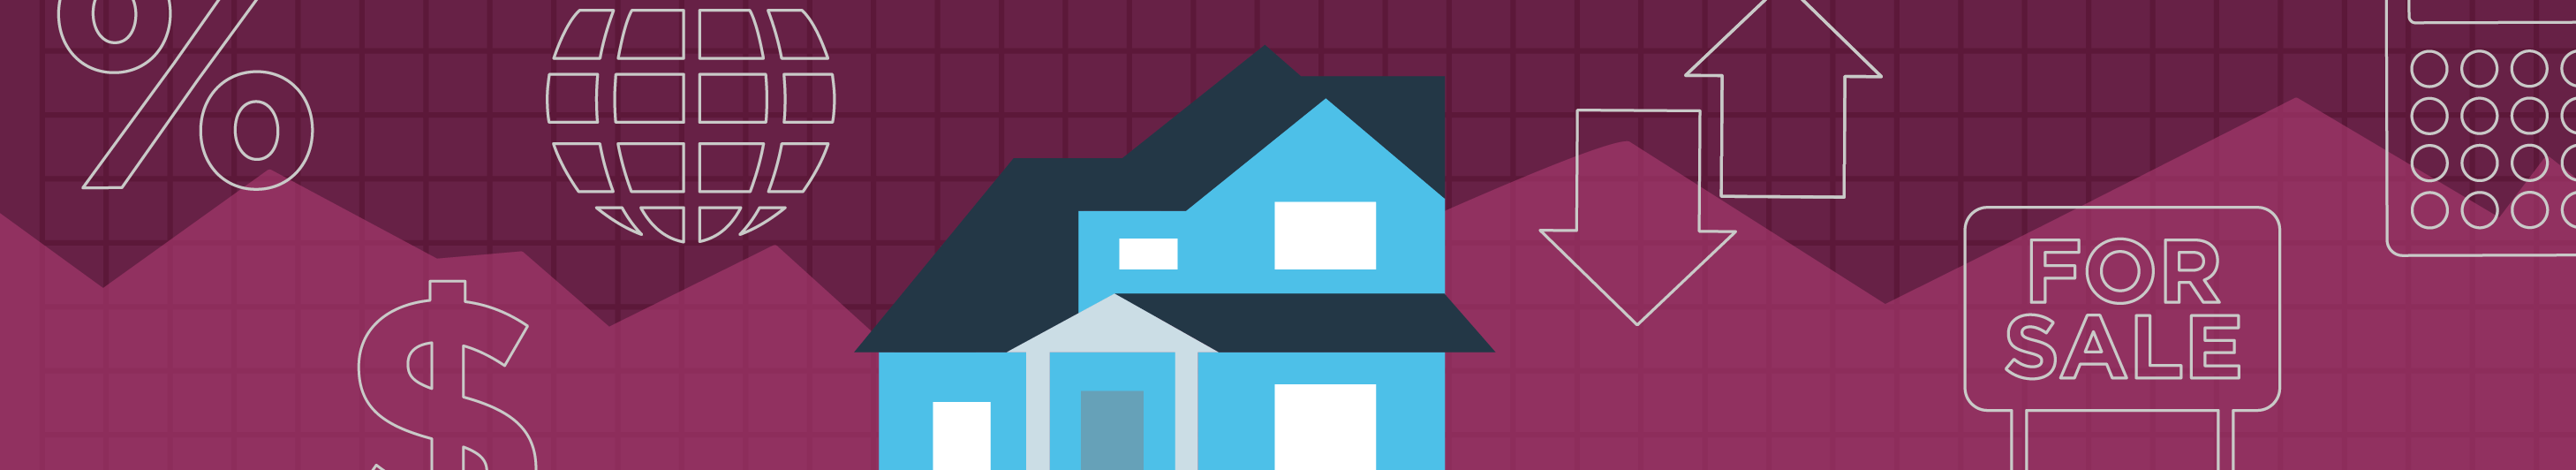 illustration of a house in front of a burgundy background